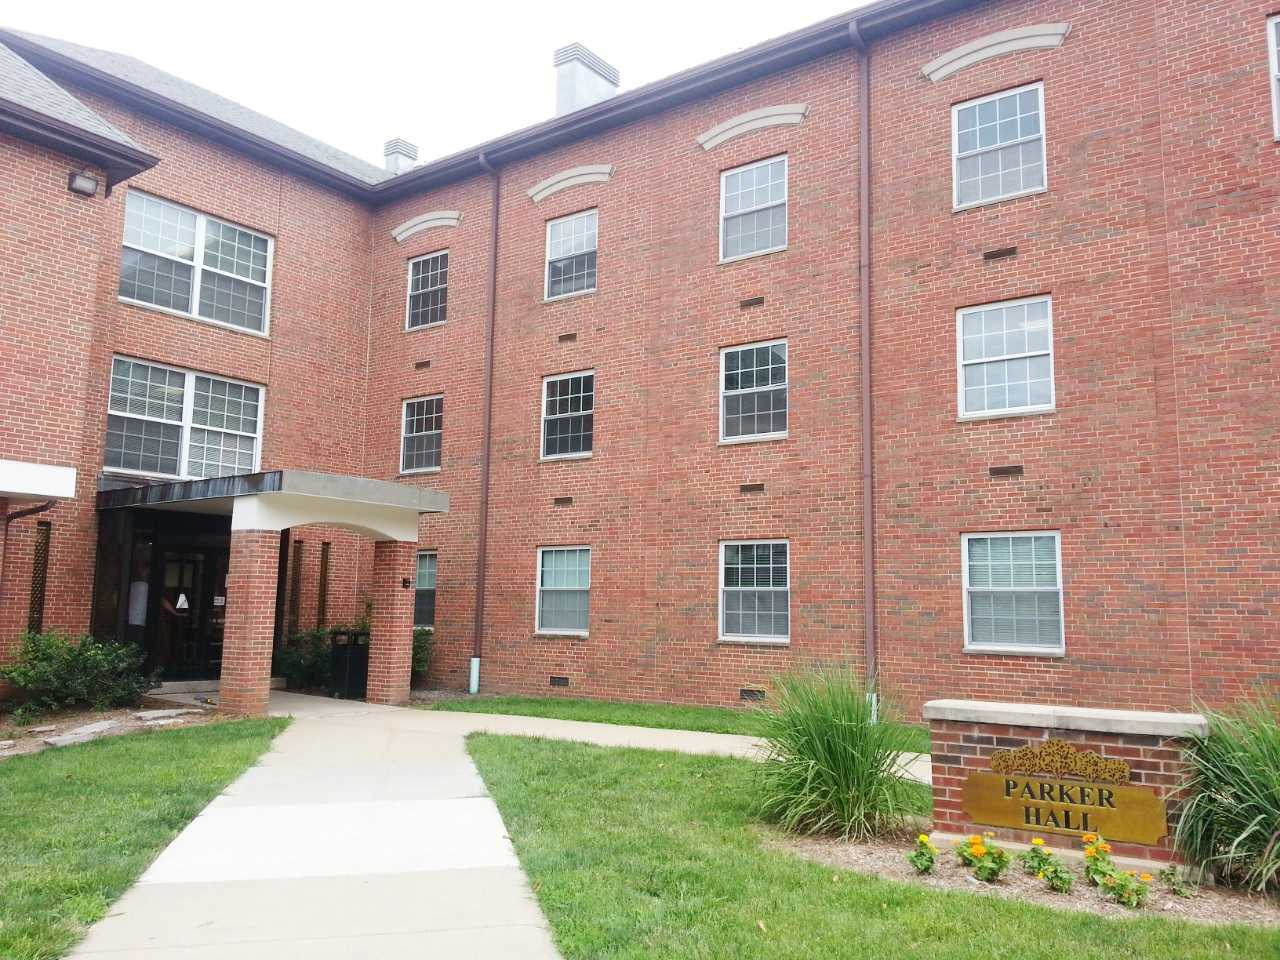 Students will be moving into Parker dorm and volunteers are sought to assist them.